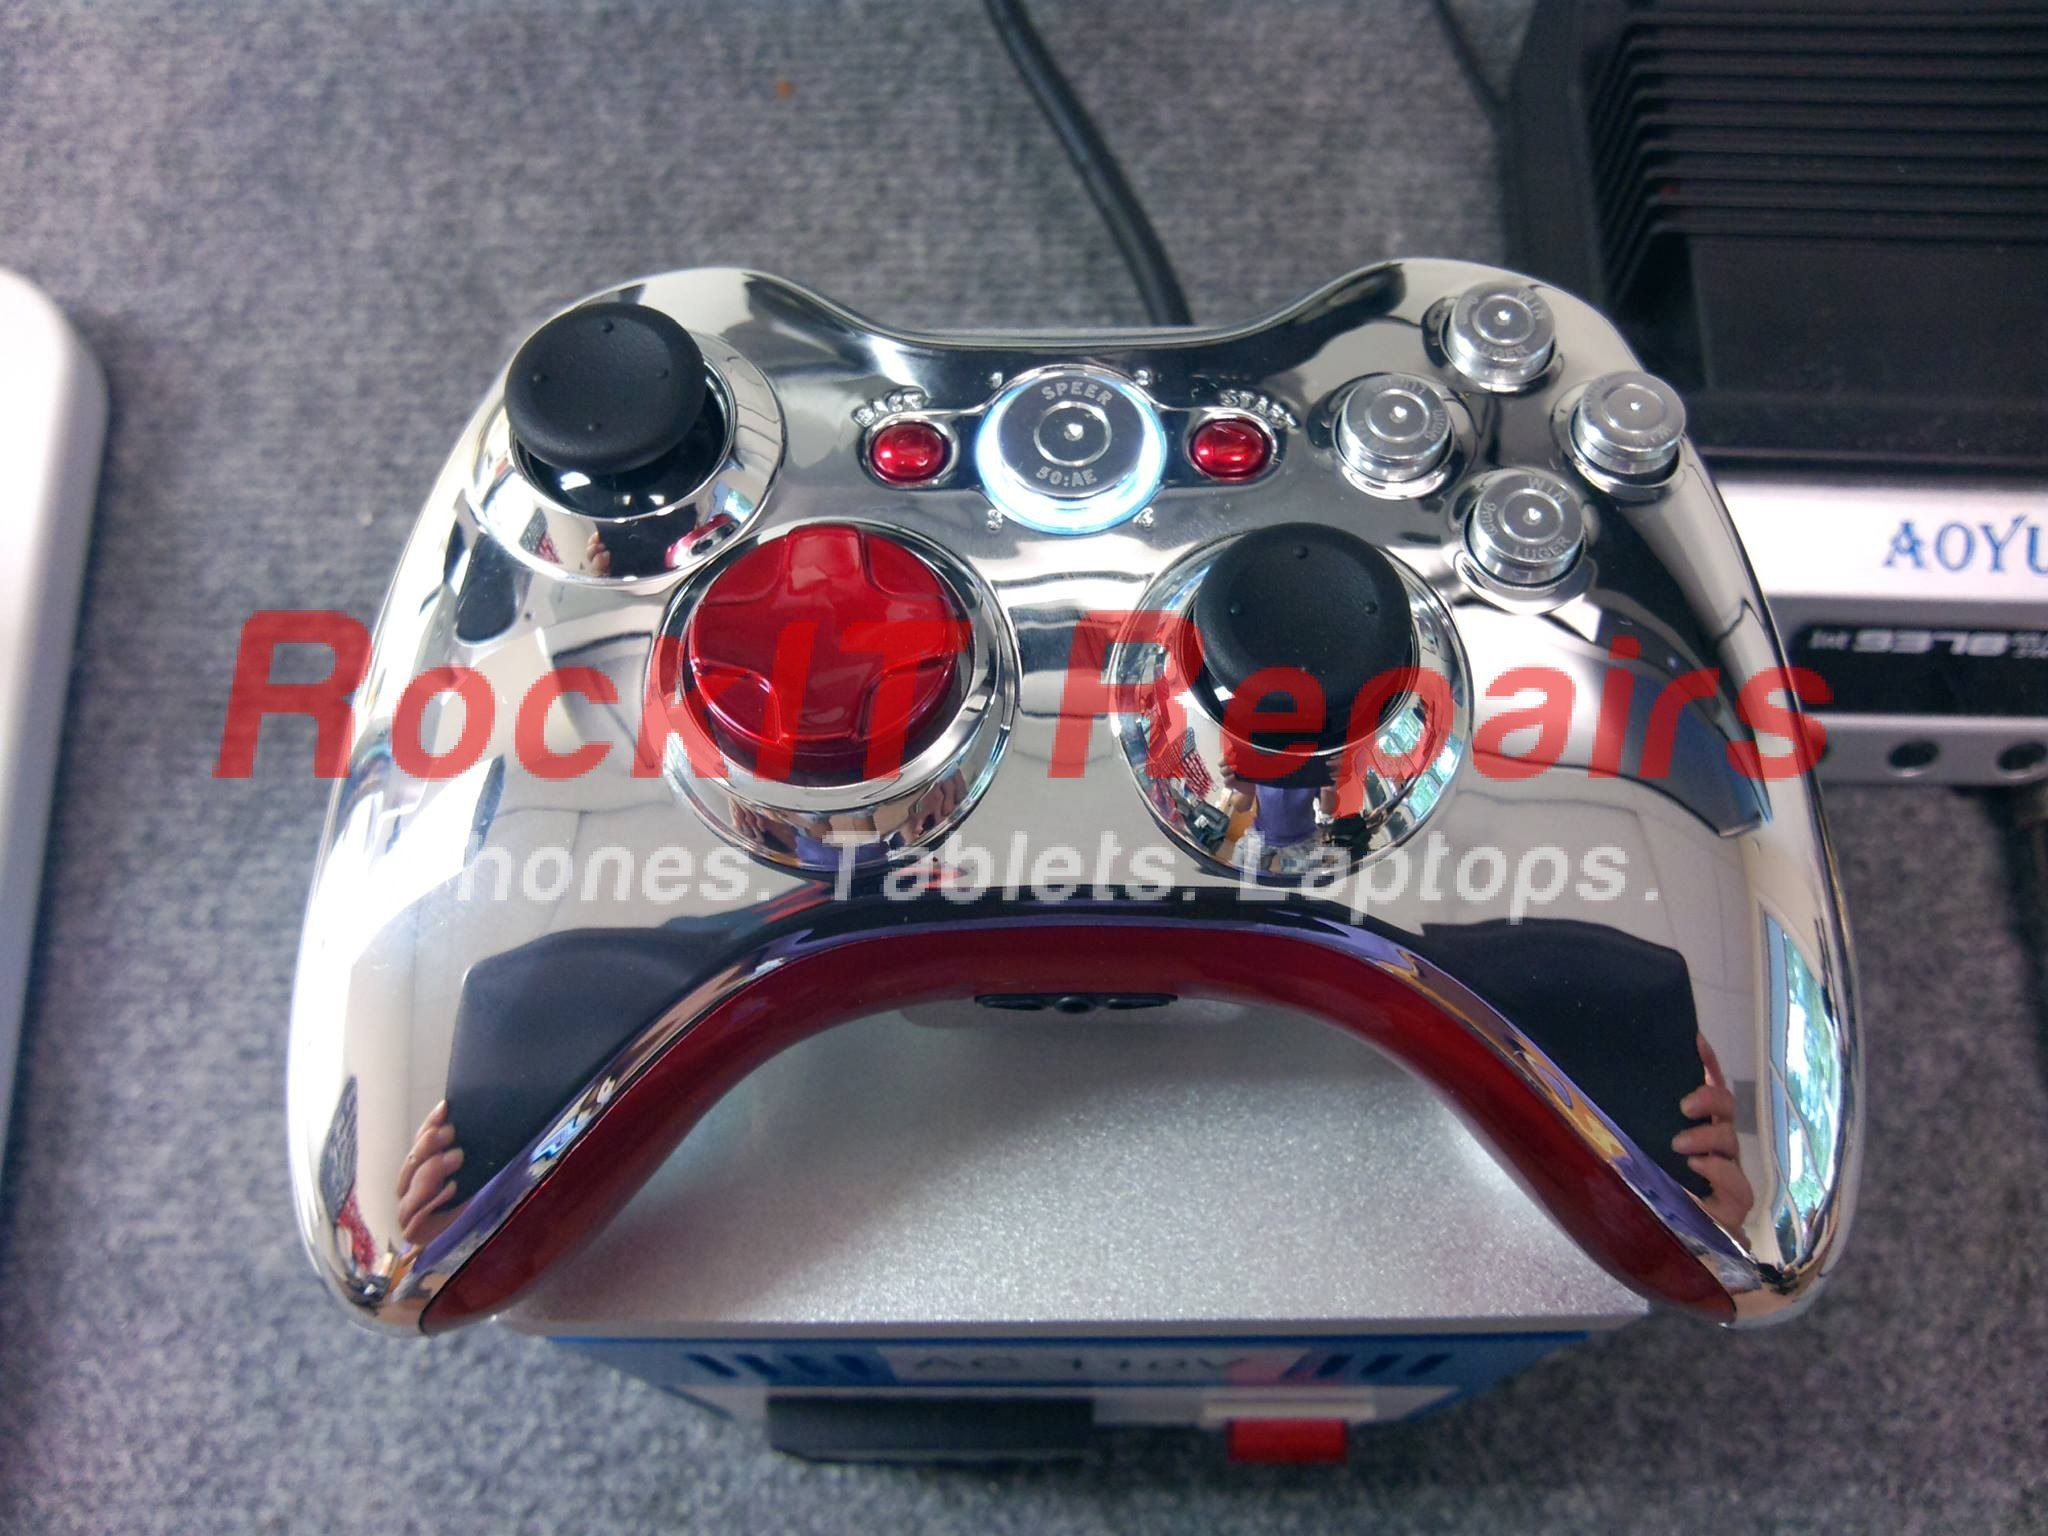 customized xbox 360 controller in chrome color